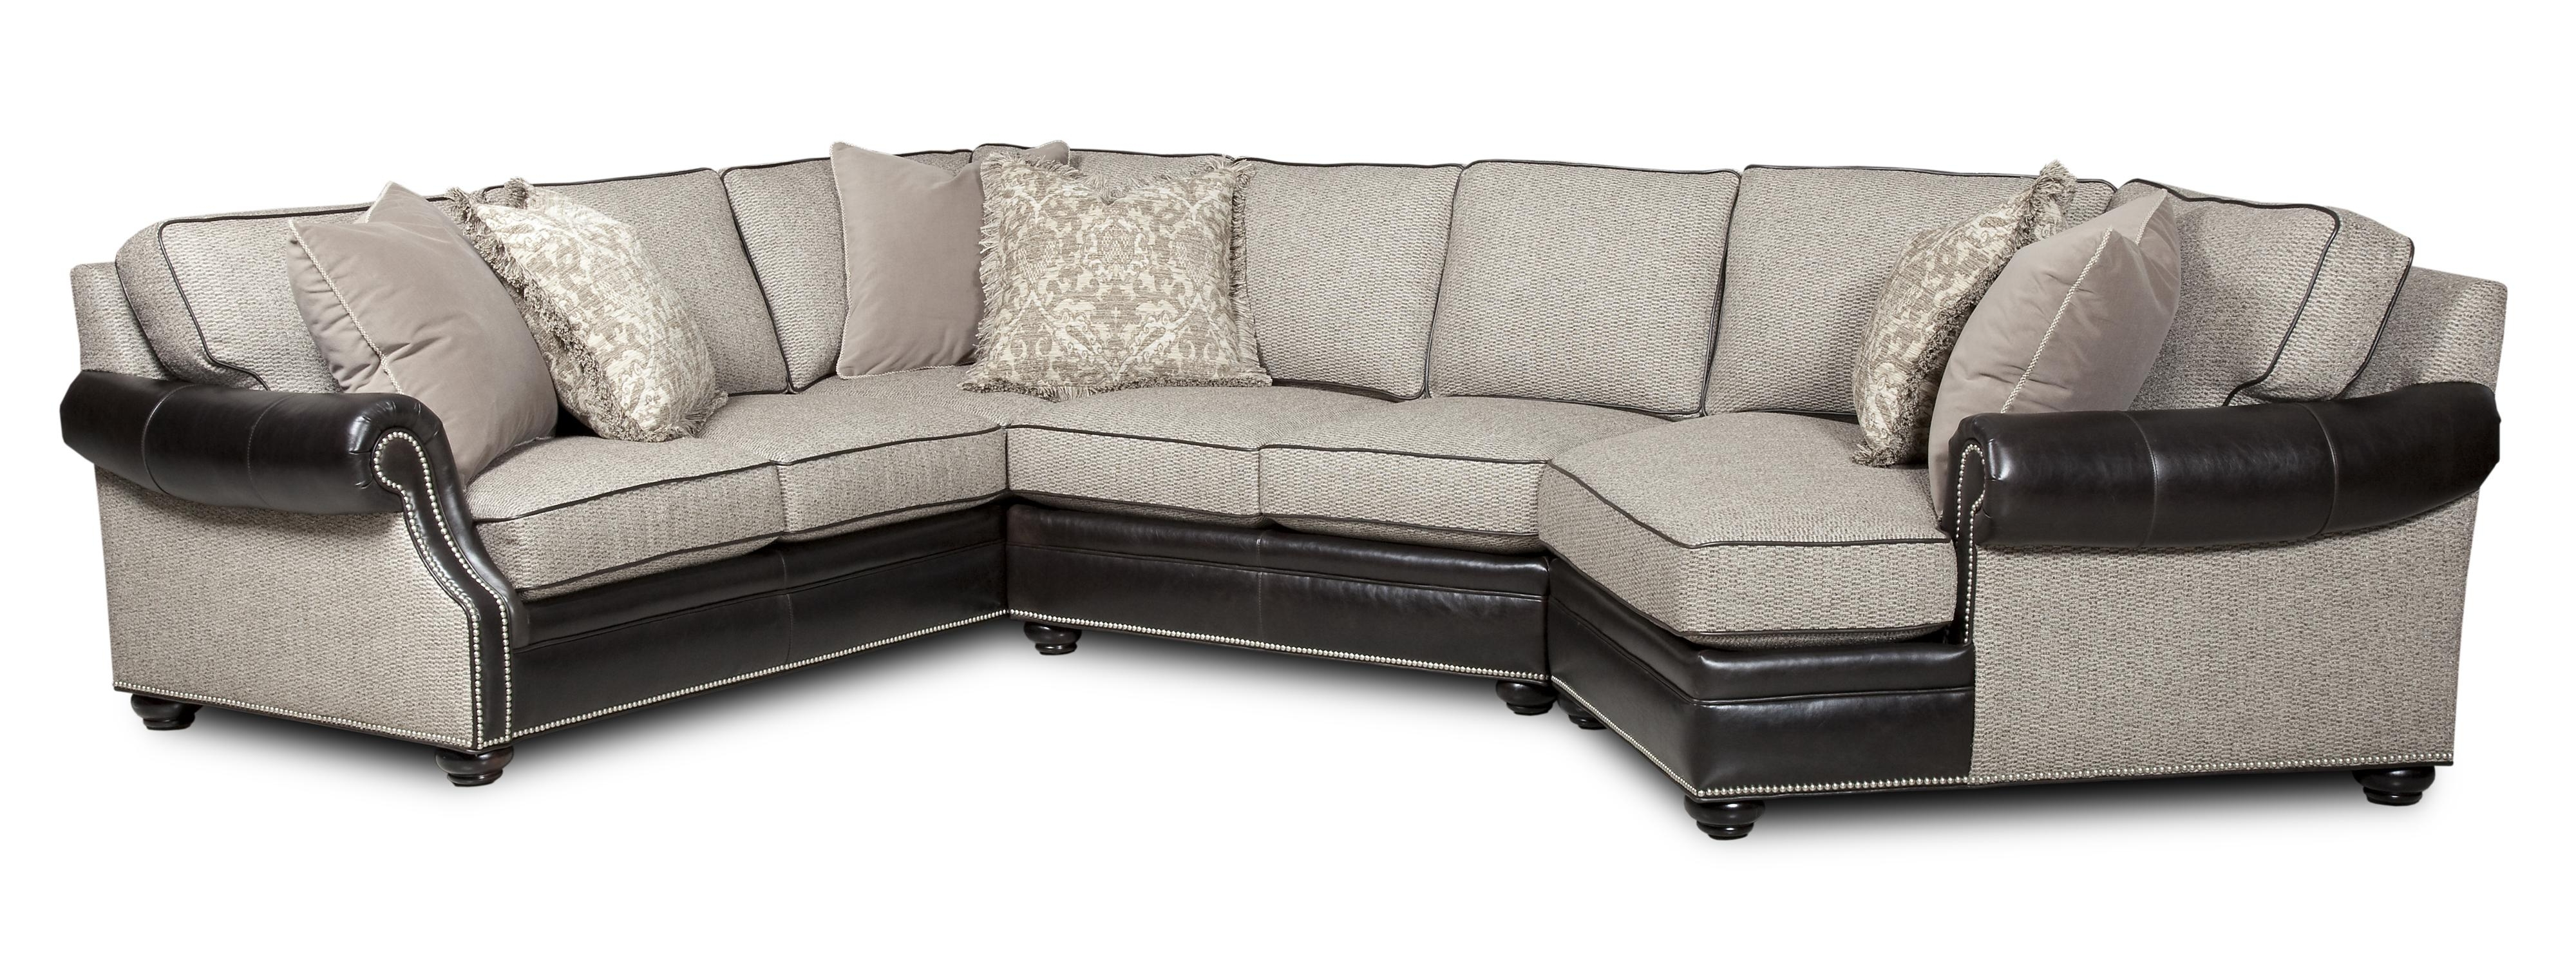 Well Known Visalia Ca Sectional Sofas With Bradington Young Warner Three Piece Sectional Sofa With Laf (View 6 of 20)